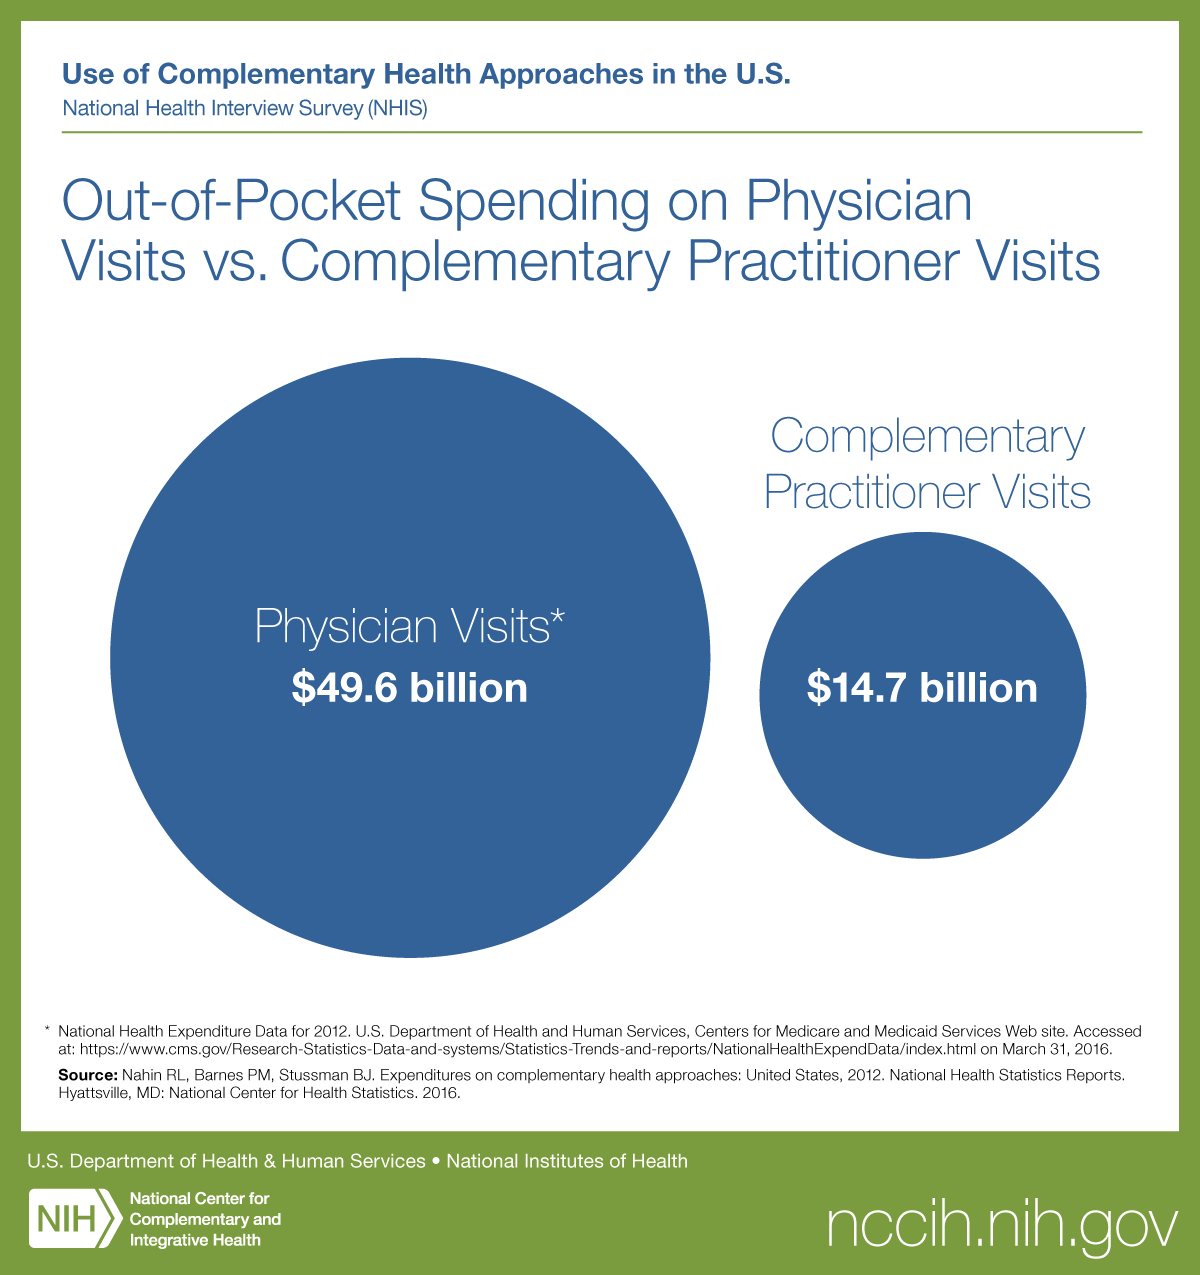 Physician Visits vs. Complementary Practitioner Visits